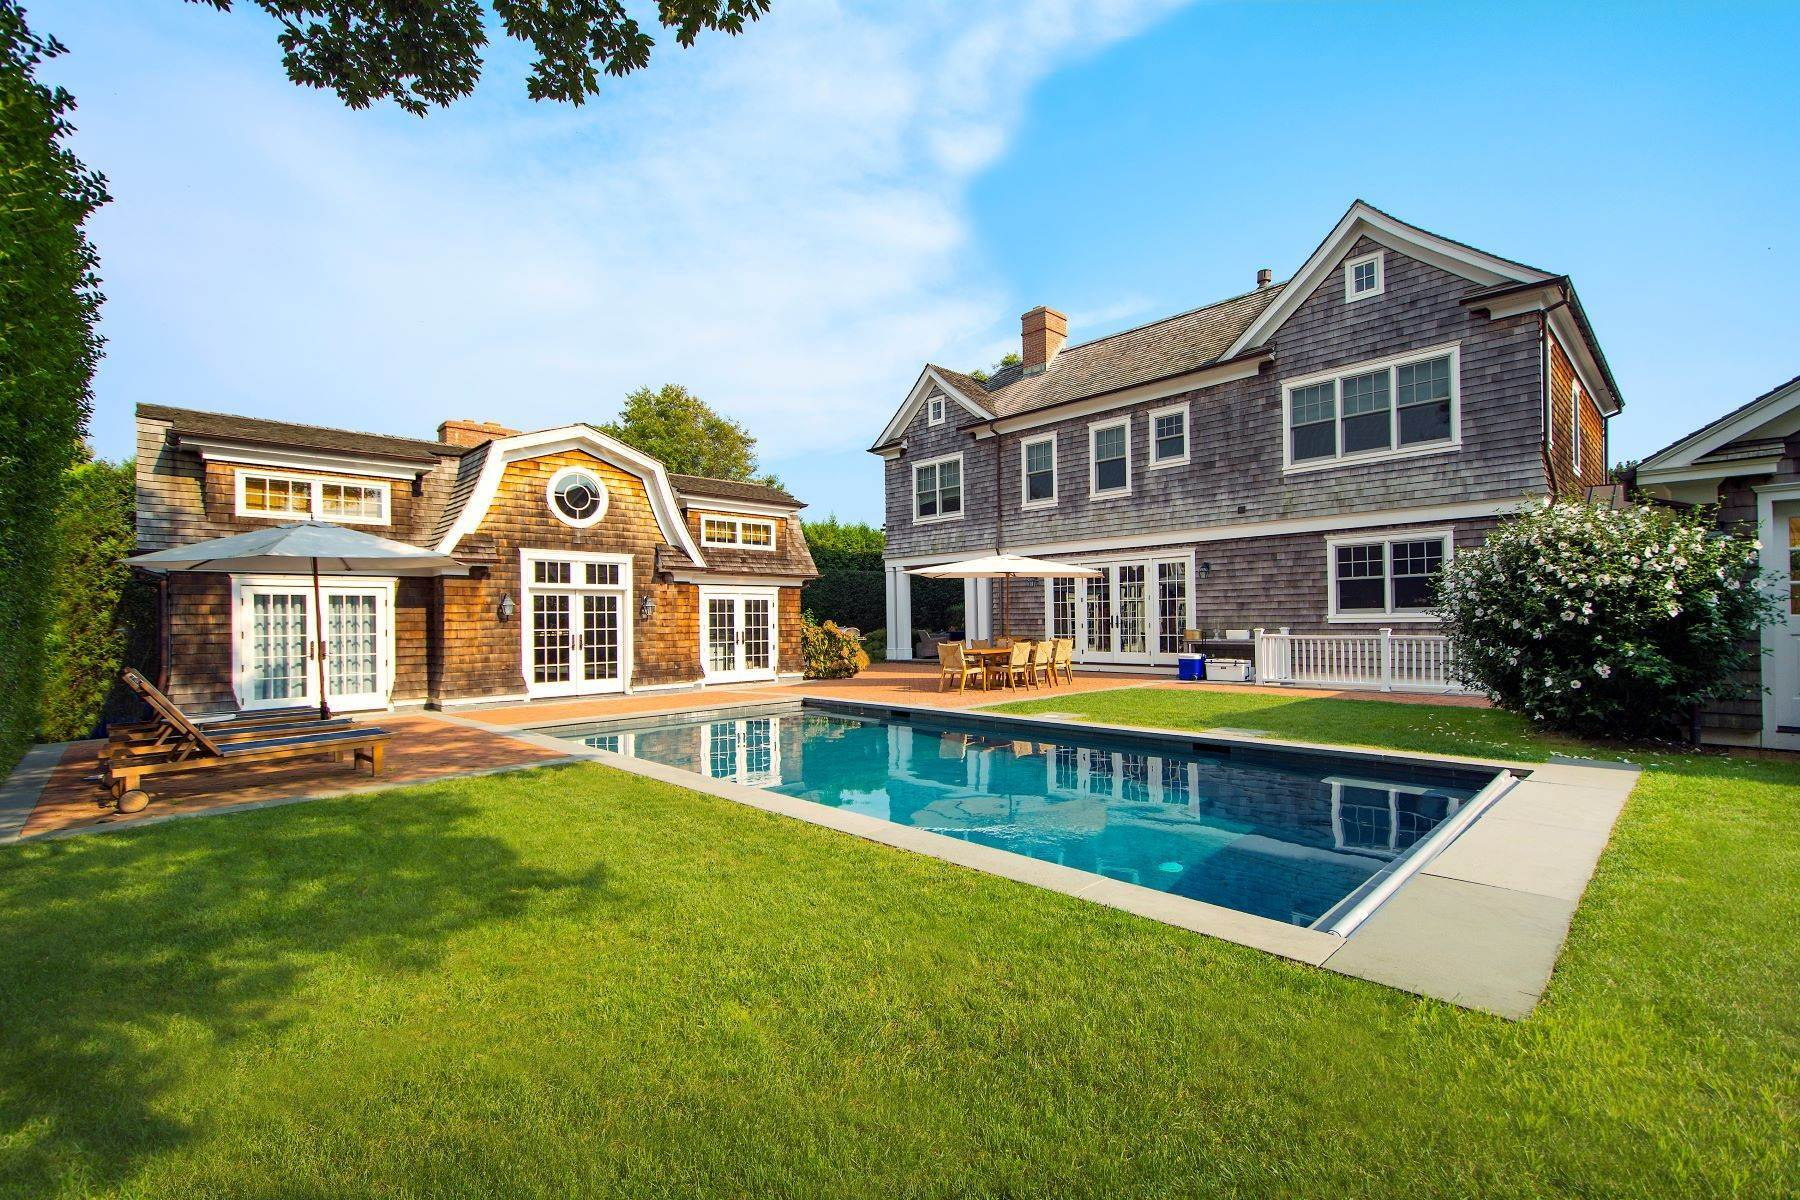 Single Family Homes のために 売買 アット Fantastic Shingle Style On Post Lane 111 Post Lane Southampton, ニューヨーク 11968 アメリカ